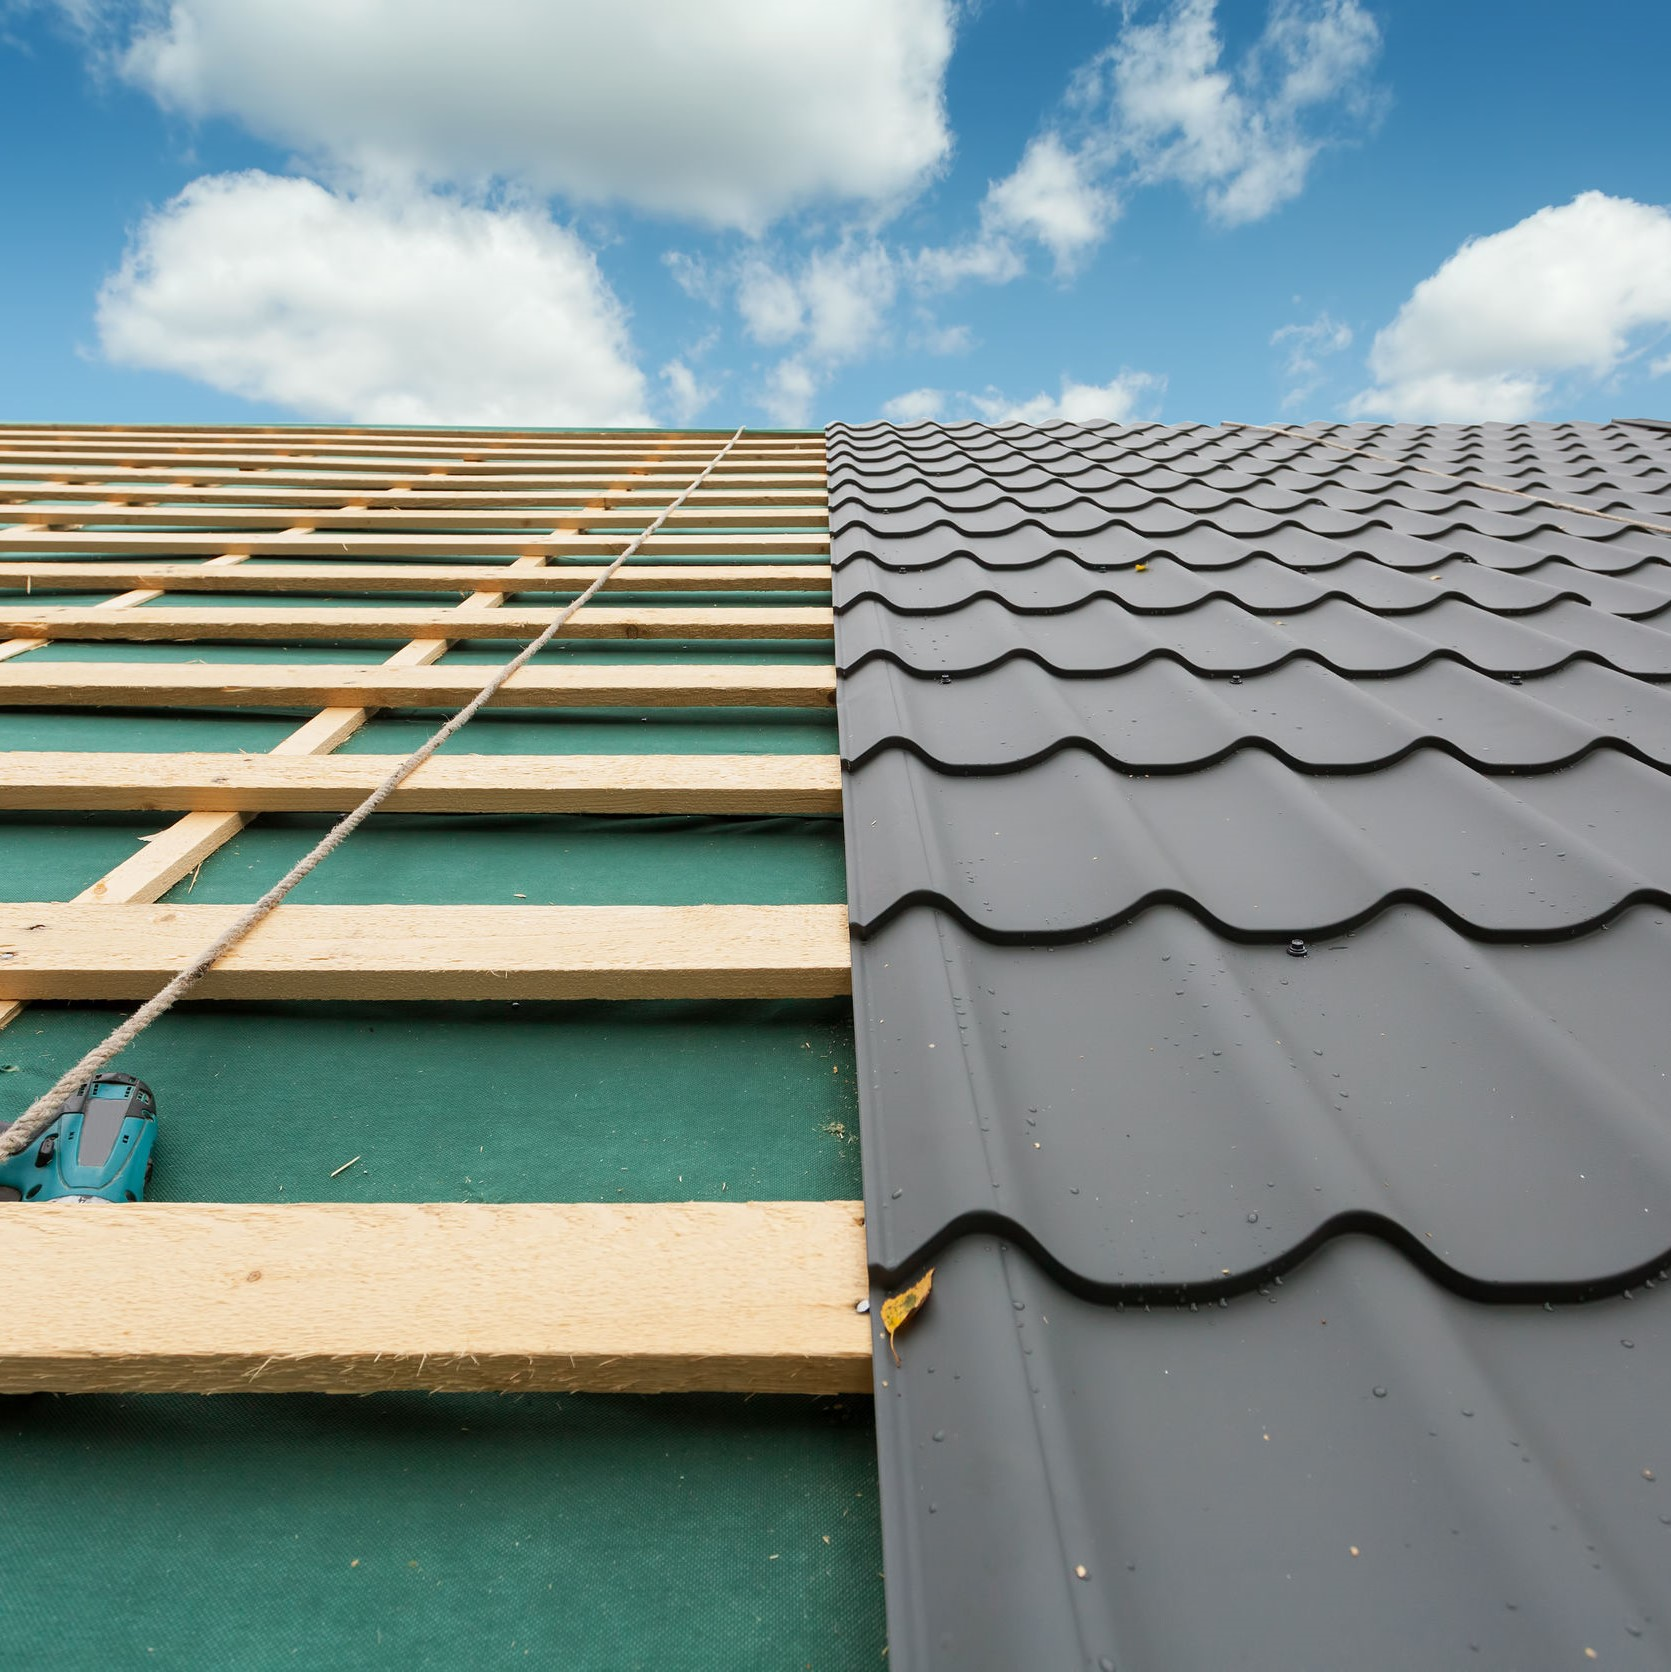 Stone coated steel roofing being placed on a roof.